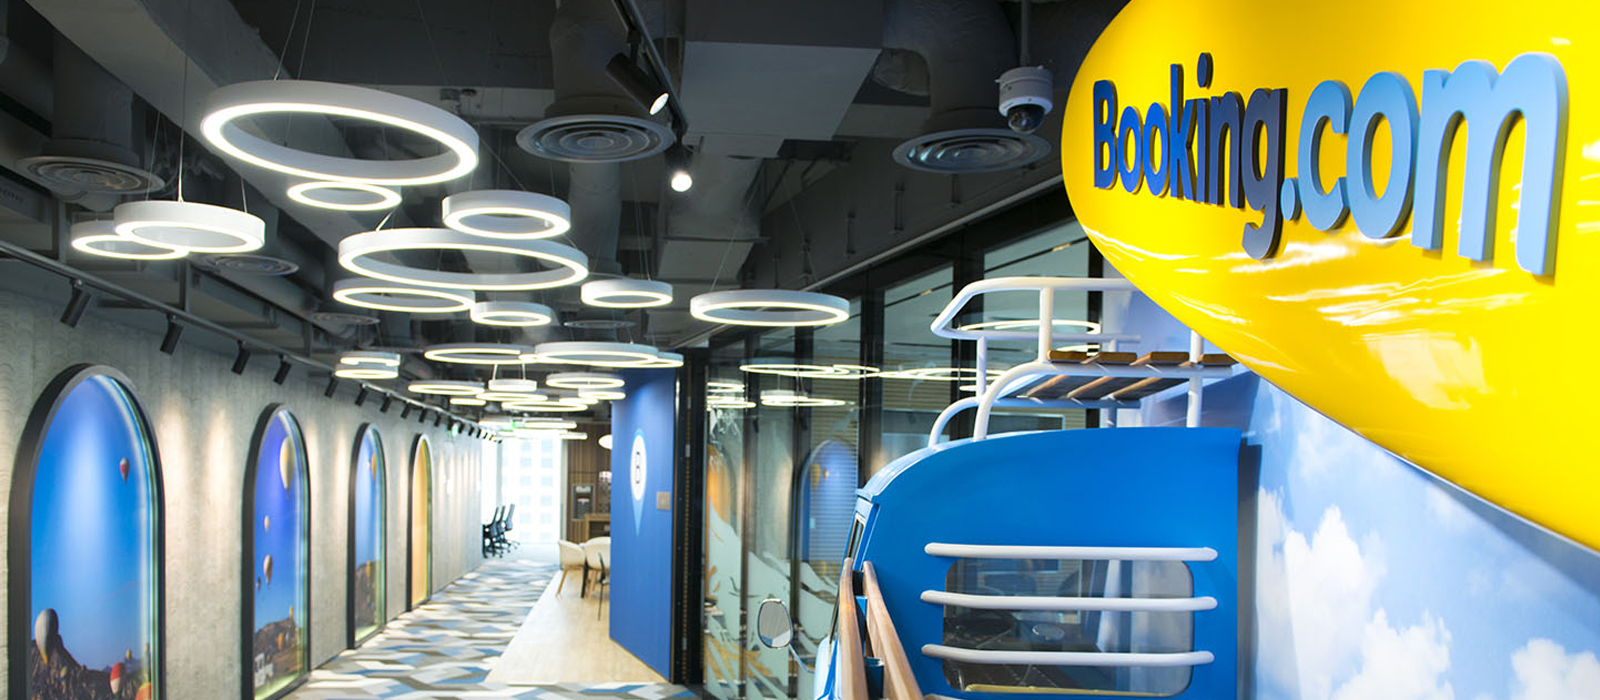 Booking.com's China office